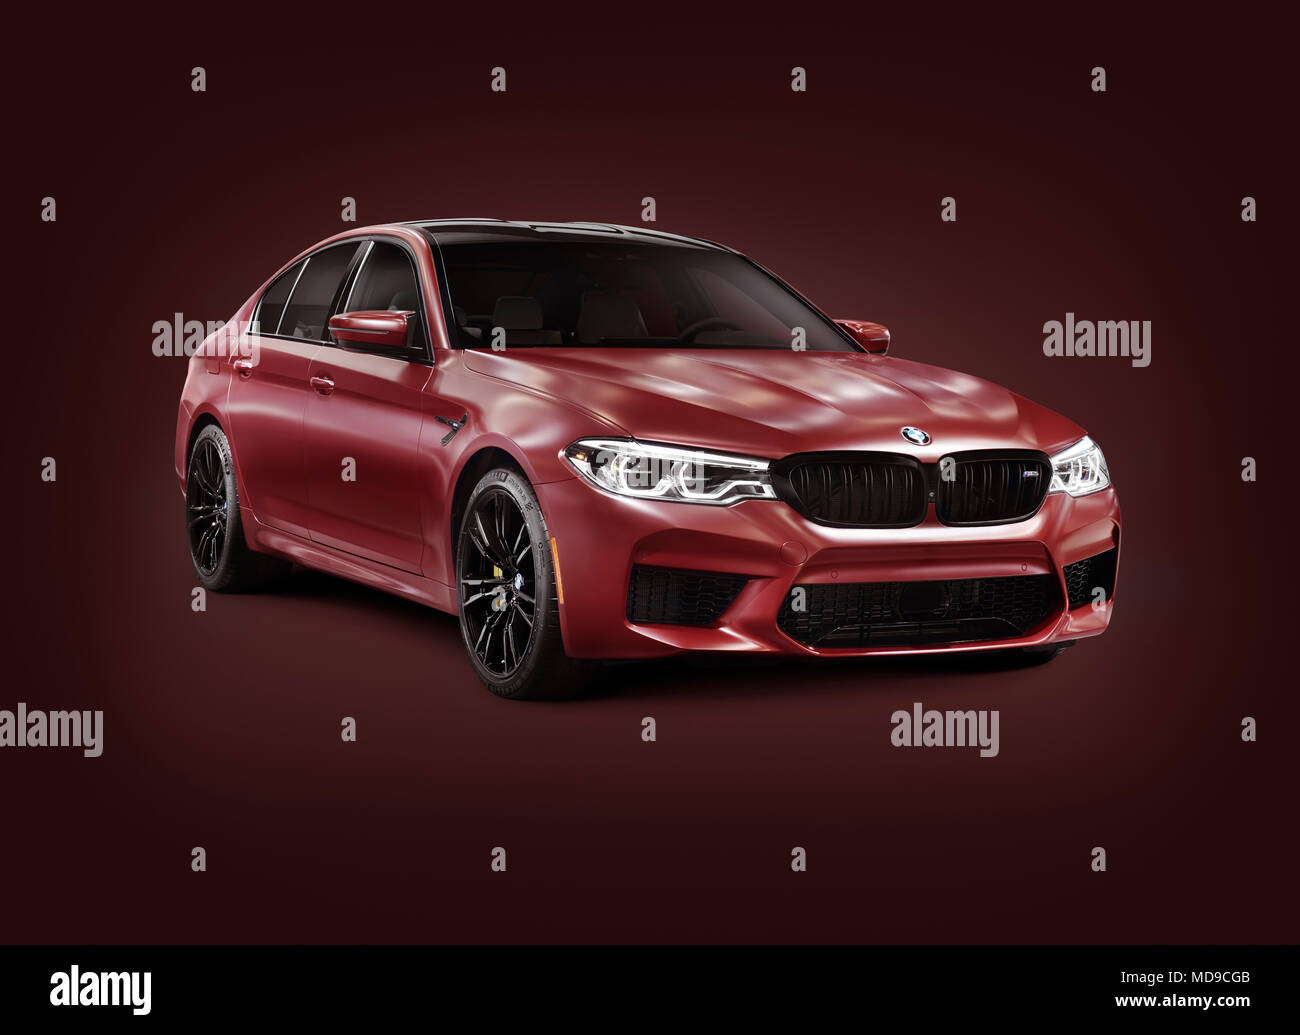 2018 Bmw M5 High Resolution Stock Photography And Images Alamy